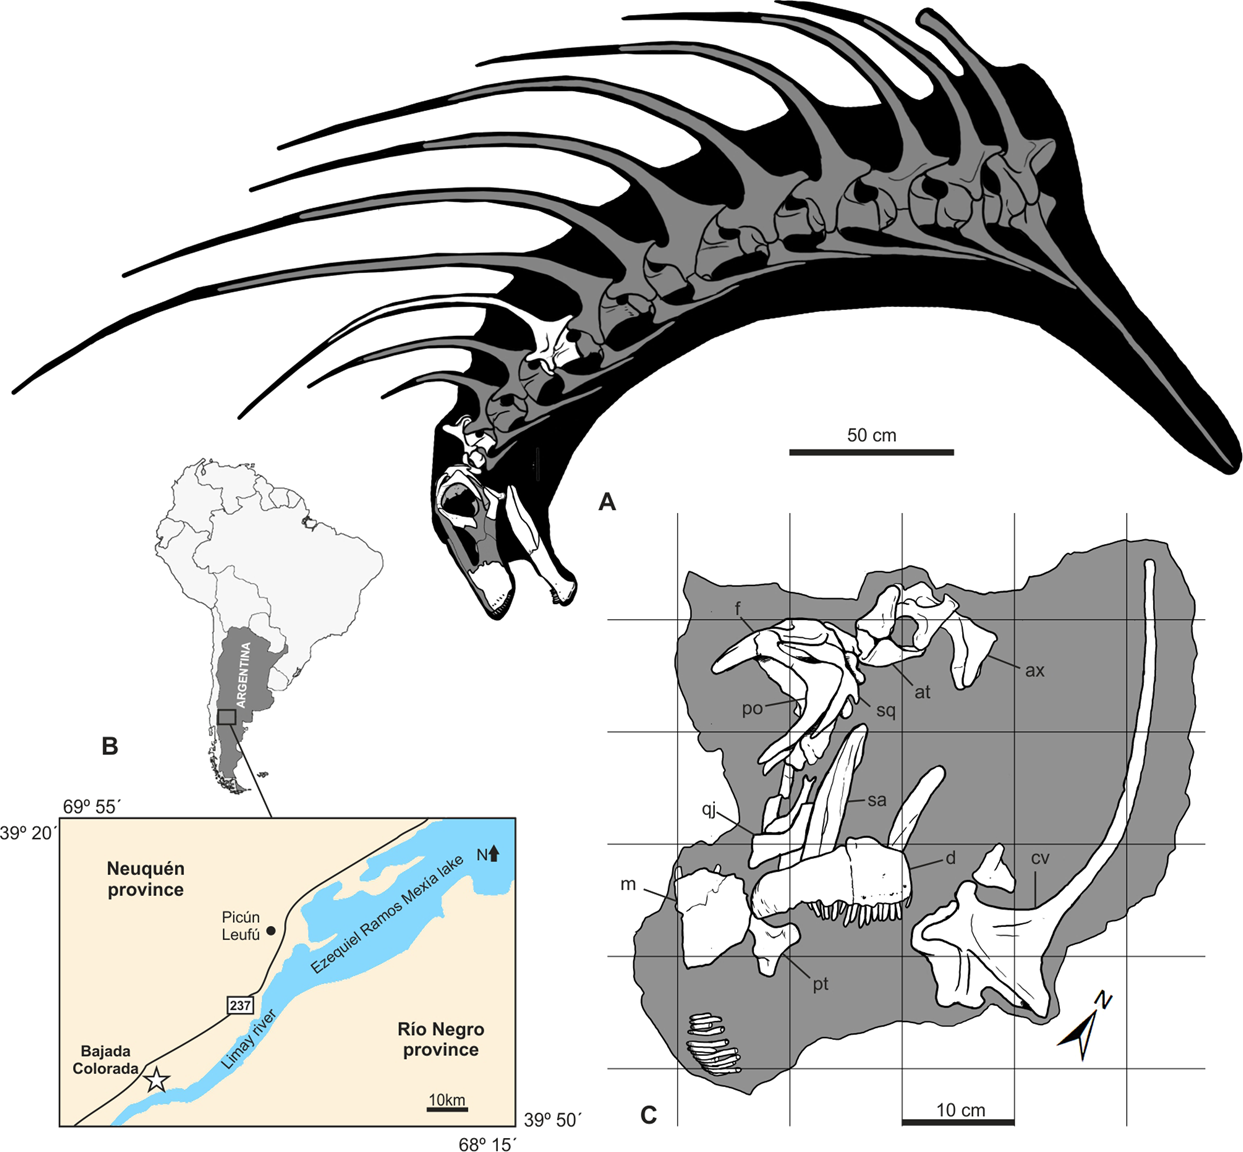 A new long-spined dinosaur from Patagonia sheds light on